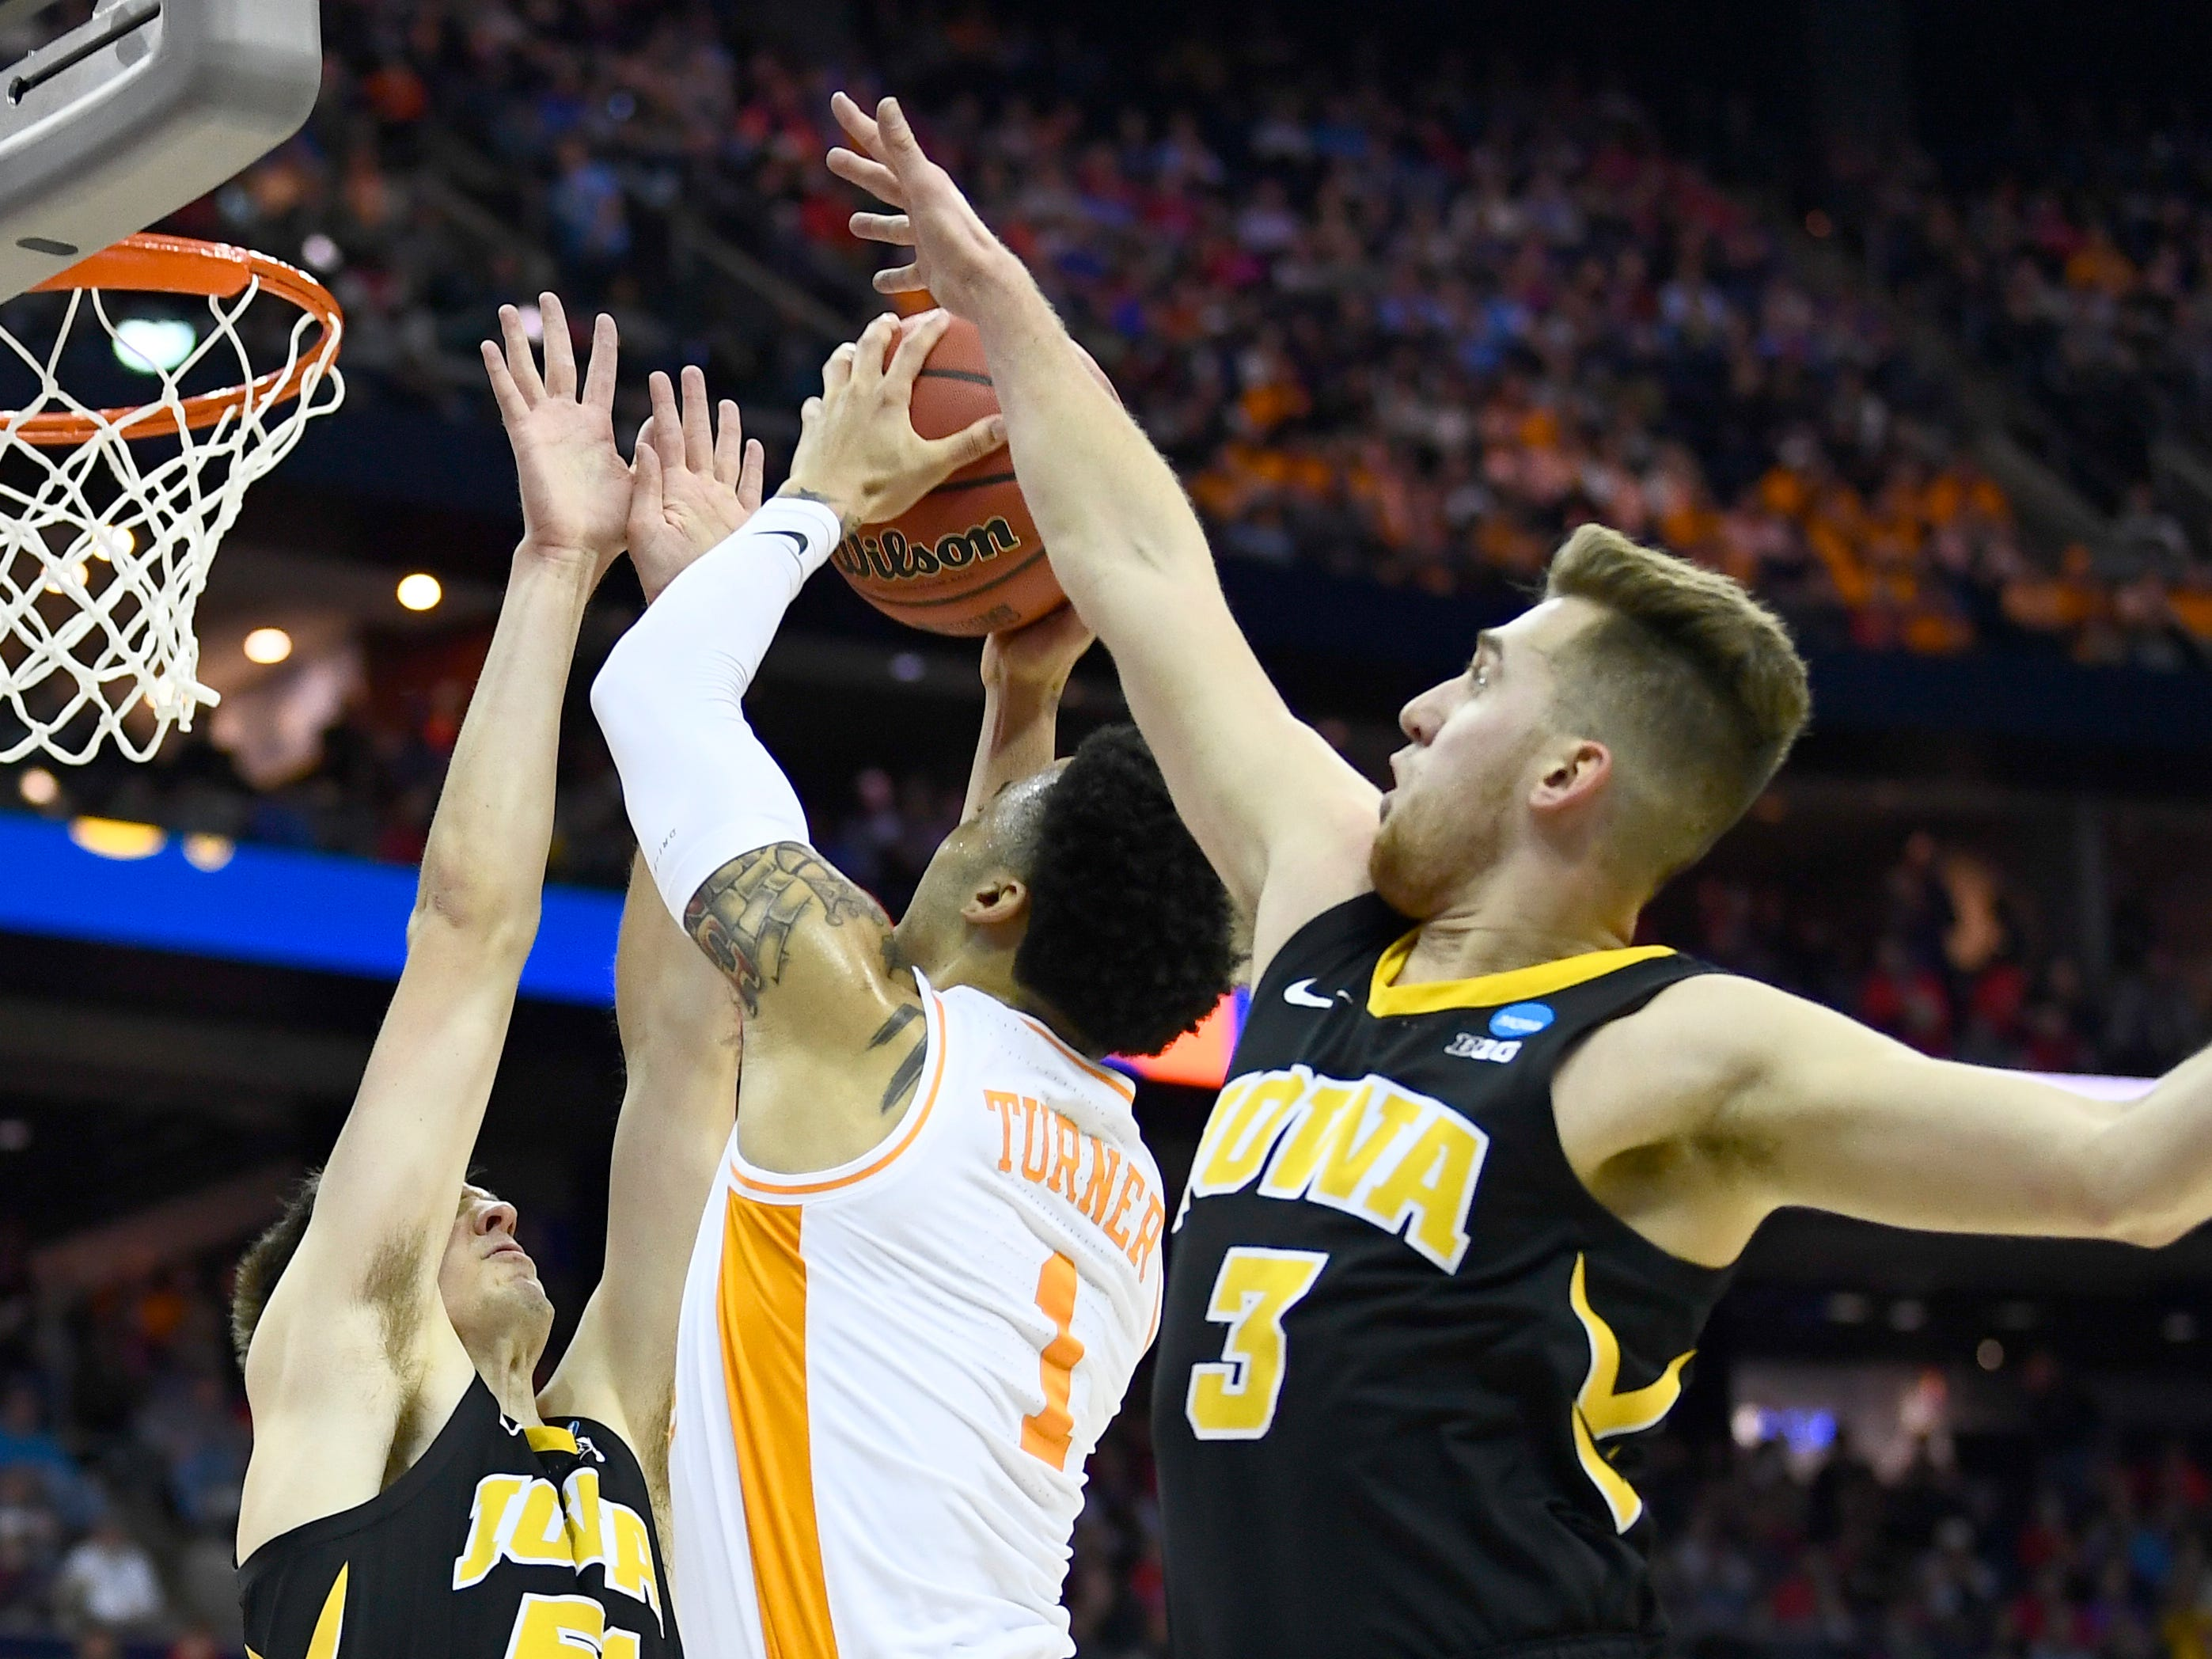 Tennessee guard Lamonte Turner (1) takes a shot between Iowa forward Nicholas Baer (51) and guard Jordan Bohannon (3) during the first half of the game in the second round of the NCAA Tournament at Nationwide Arena in Columbus, Ohio, Sunday, March 24, 2019.